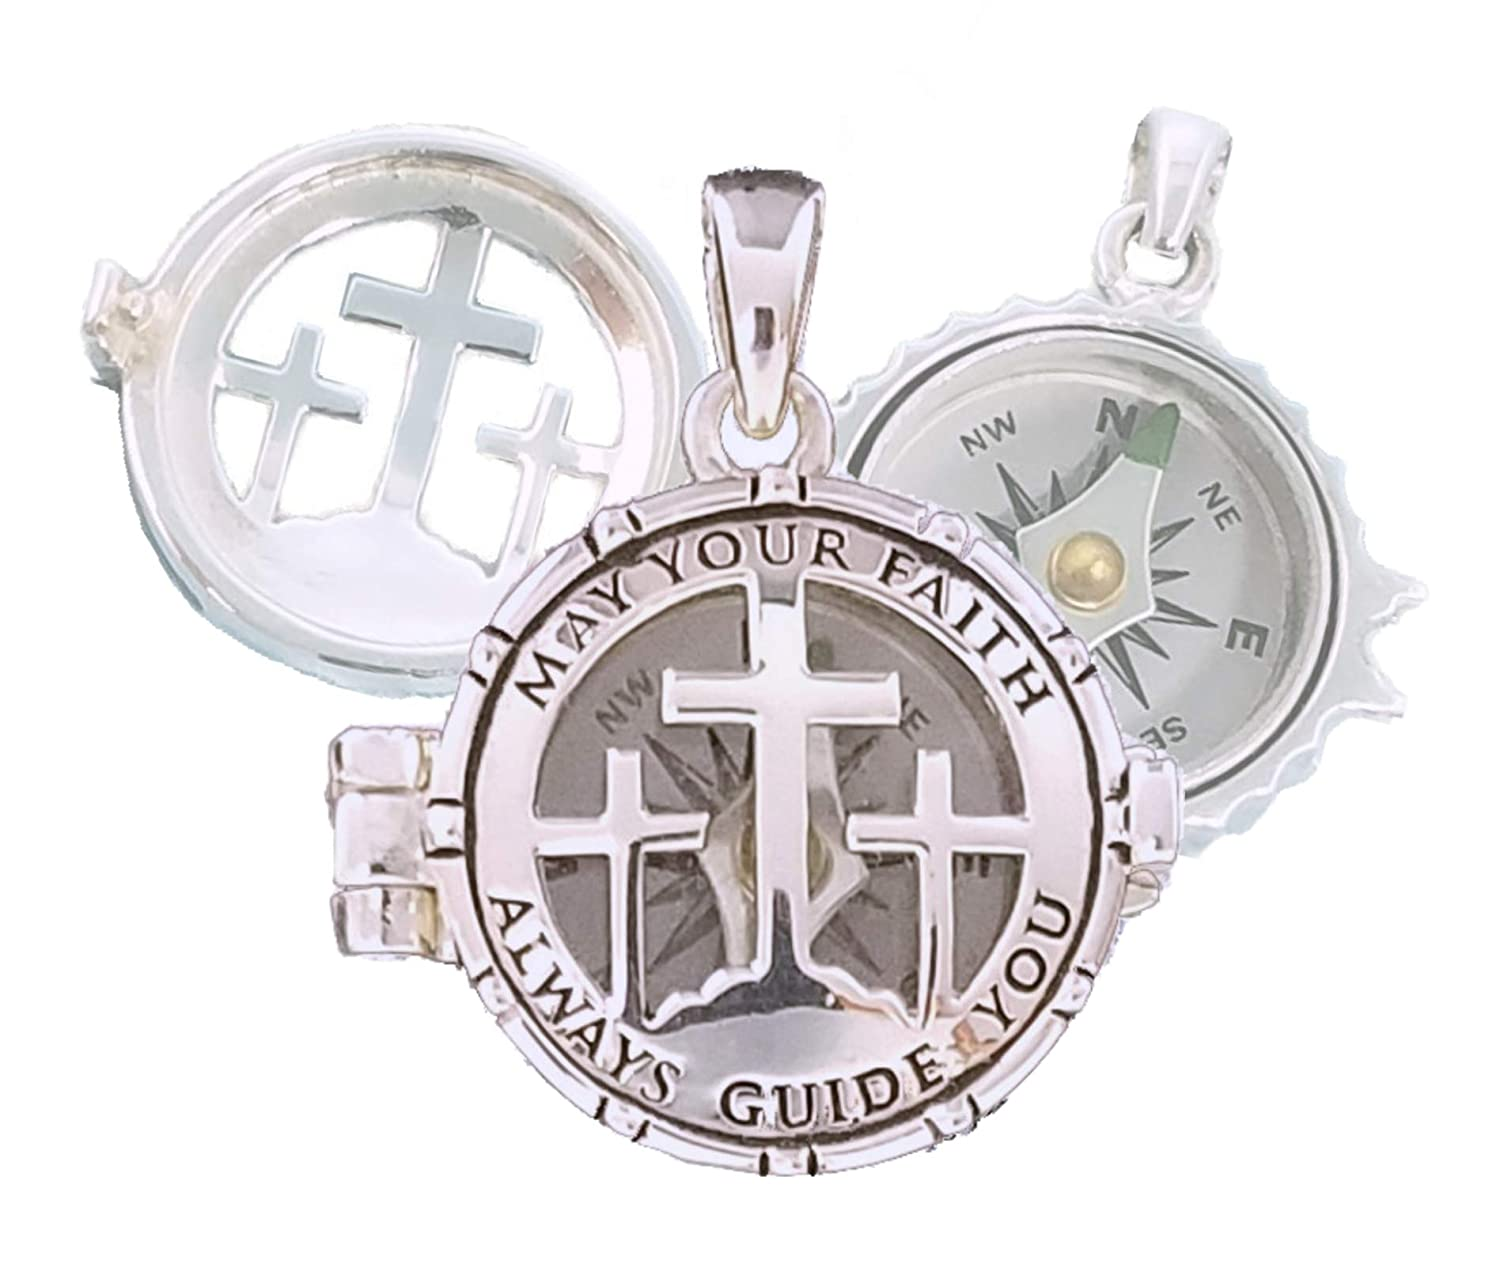 Stanley London May Your Faith Always Guide You Compass ロケット - 洗礼式、堅信礼、使命、誕生日の贈り物に最適 パーソナライズ(Personalized)  B07KCRPHP1